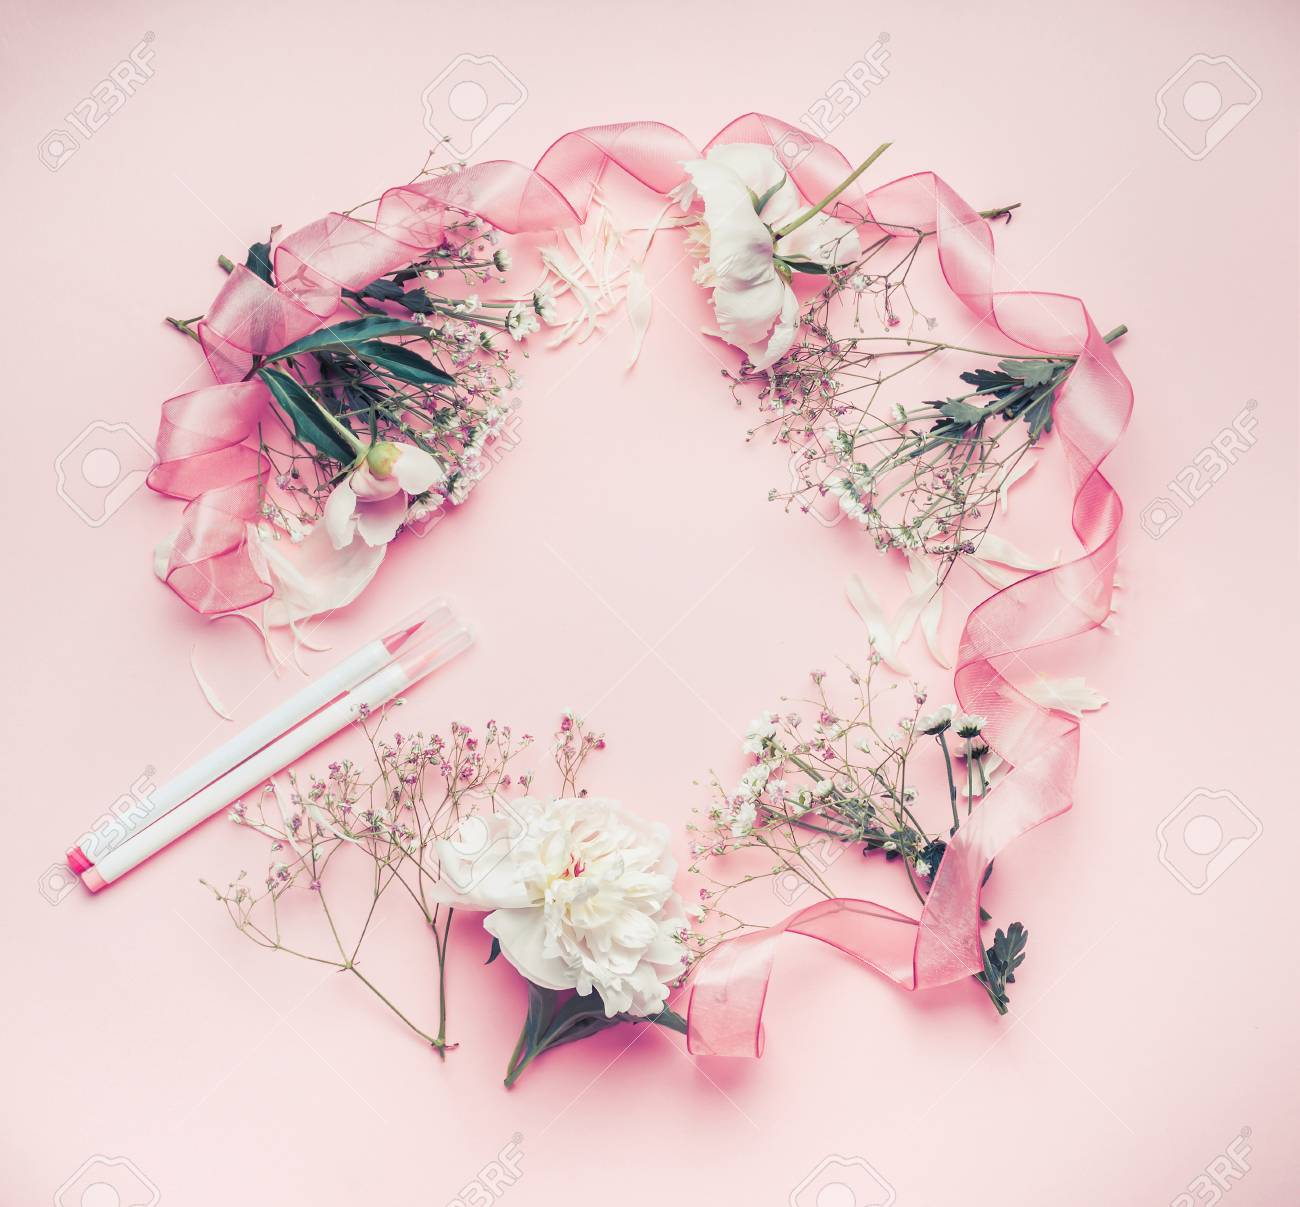 Round Floral Frame Arrangement With Pastel Pink Flowers Markers Stock Photo Picture And Royalty Free Image Image 80059541